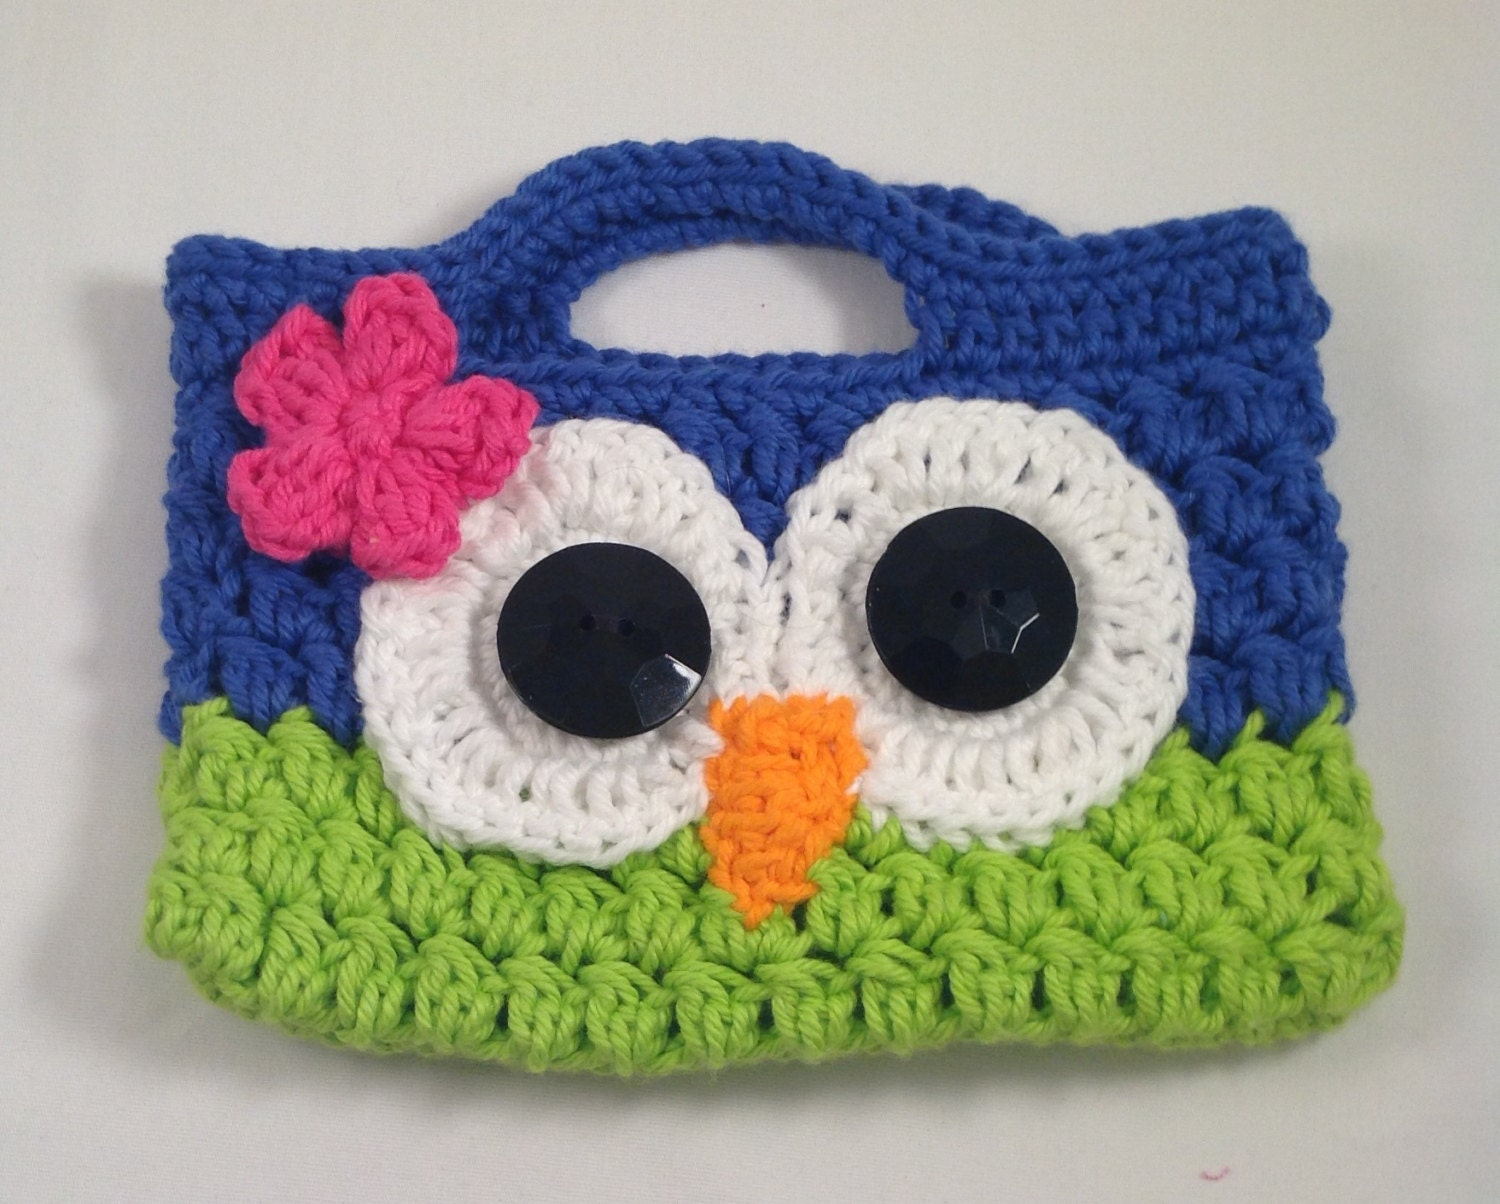 Easy crochet owl purse pattern manet for crochet owl purse crochet owl bag crochet girl purse handmade bankloansurffo Image collections